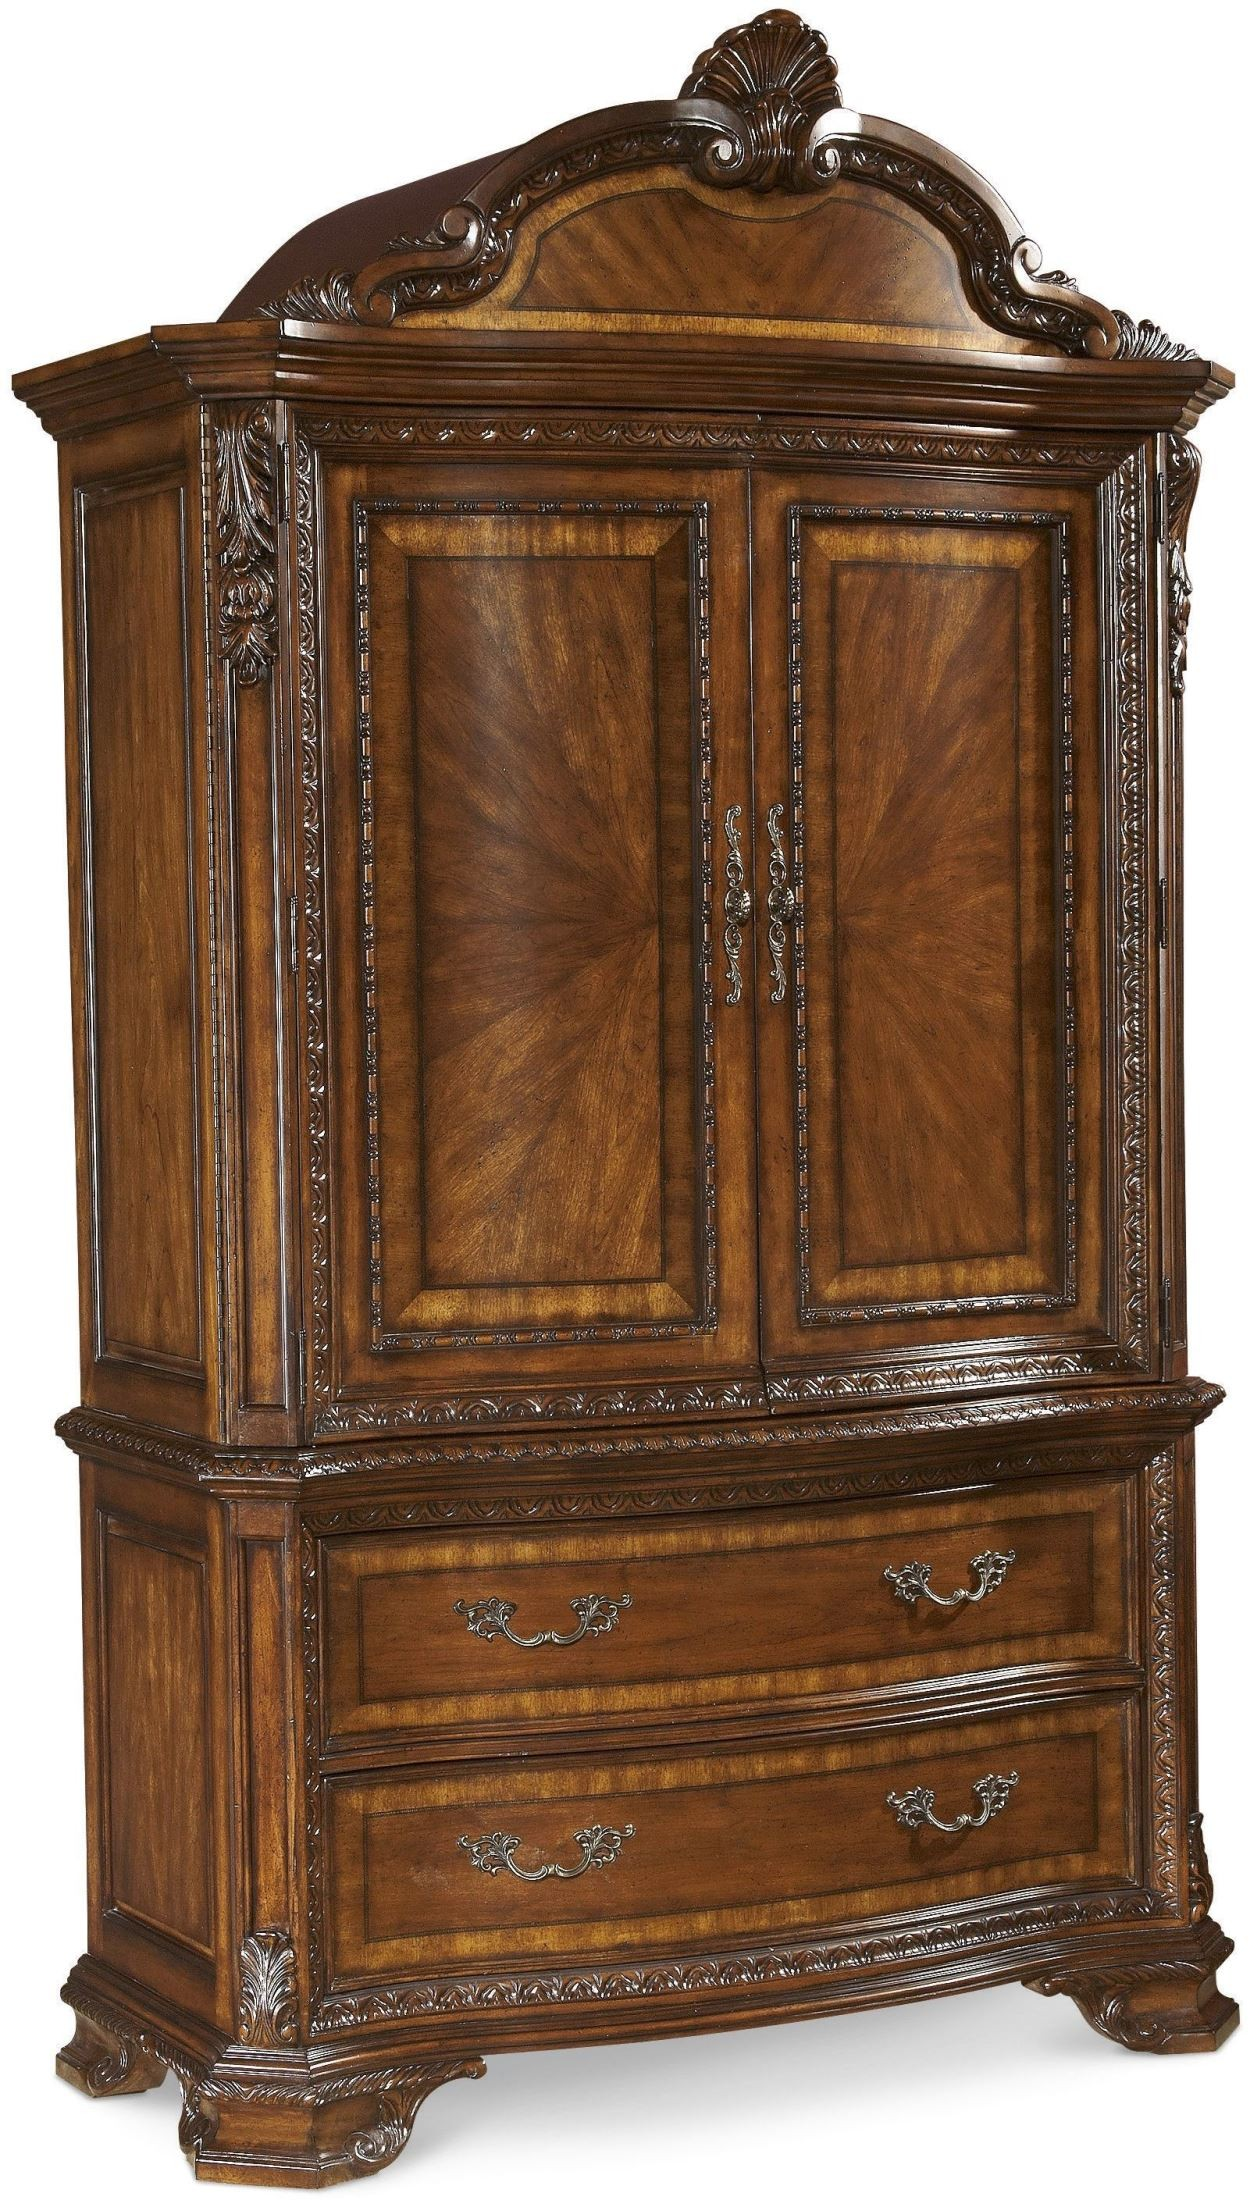 World Bedroom Furniture: Old World Estate Bedroom Set From ART (143155)